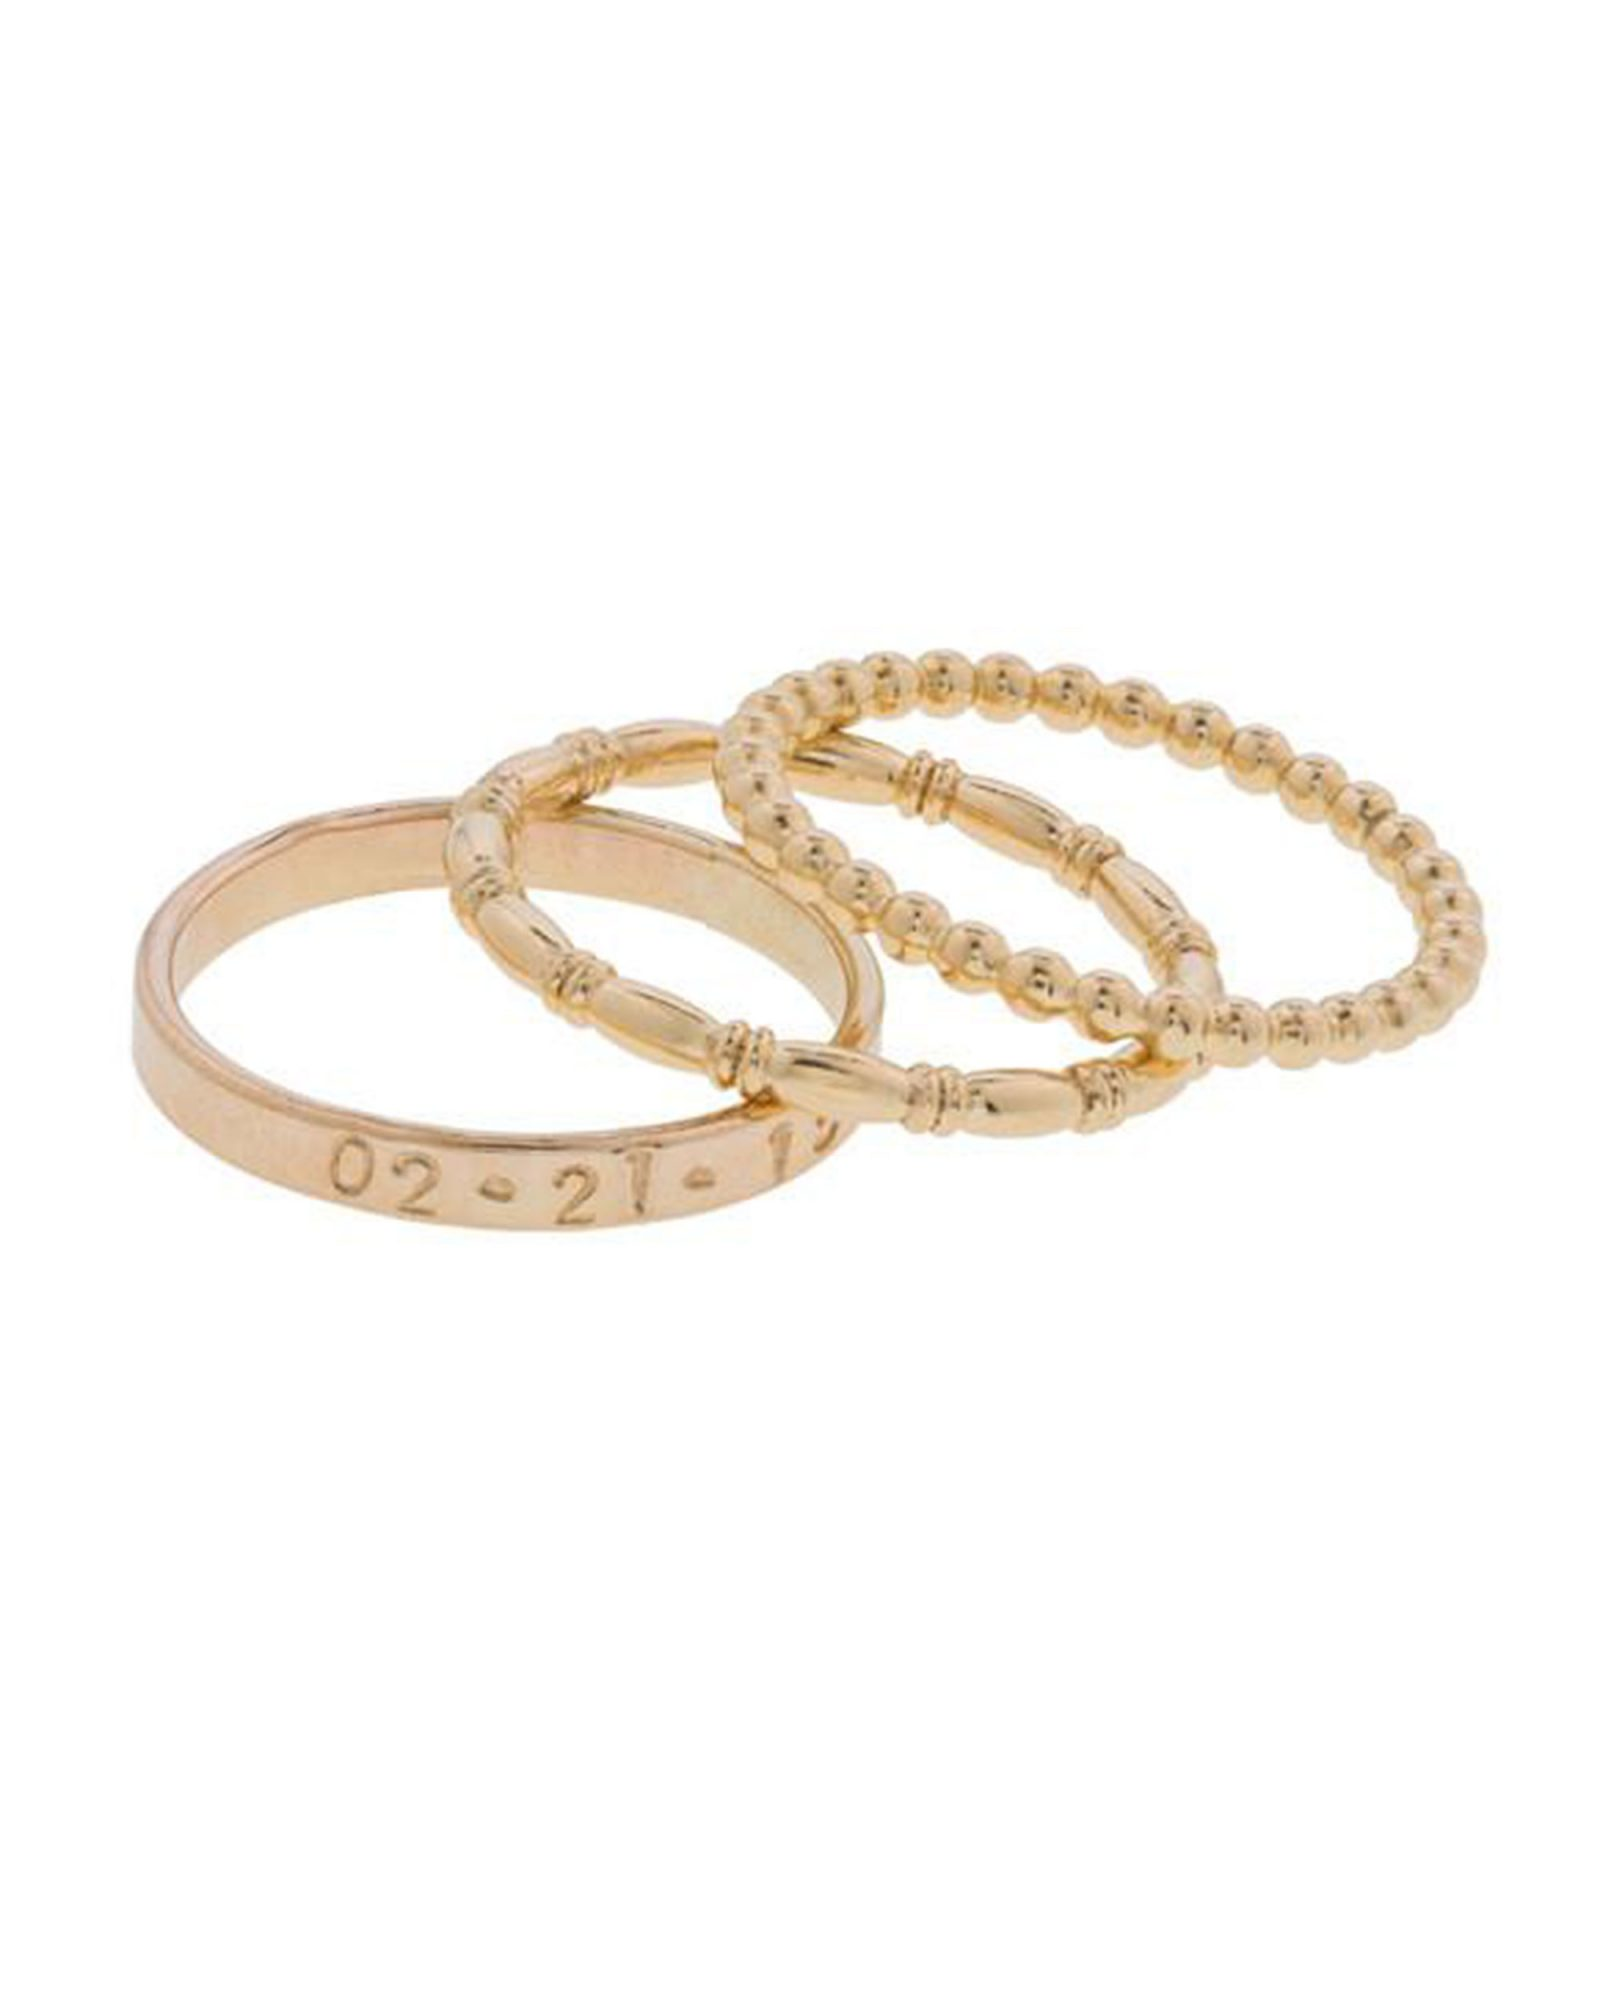 taudrey-struck-gold-ring-stack-three-rings